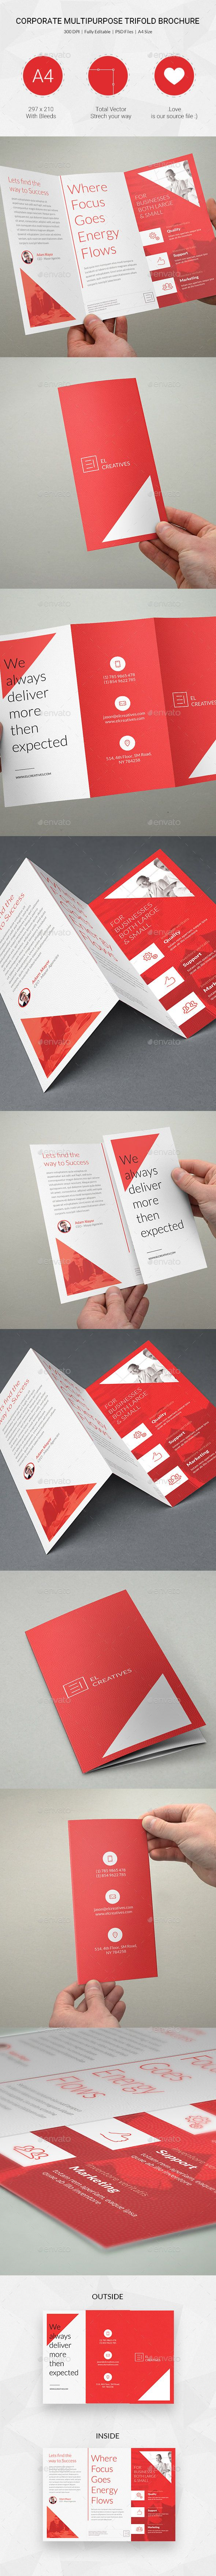 Creative Multipurpose Trofild Brochure - 17 - Corporate Brochures